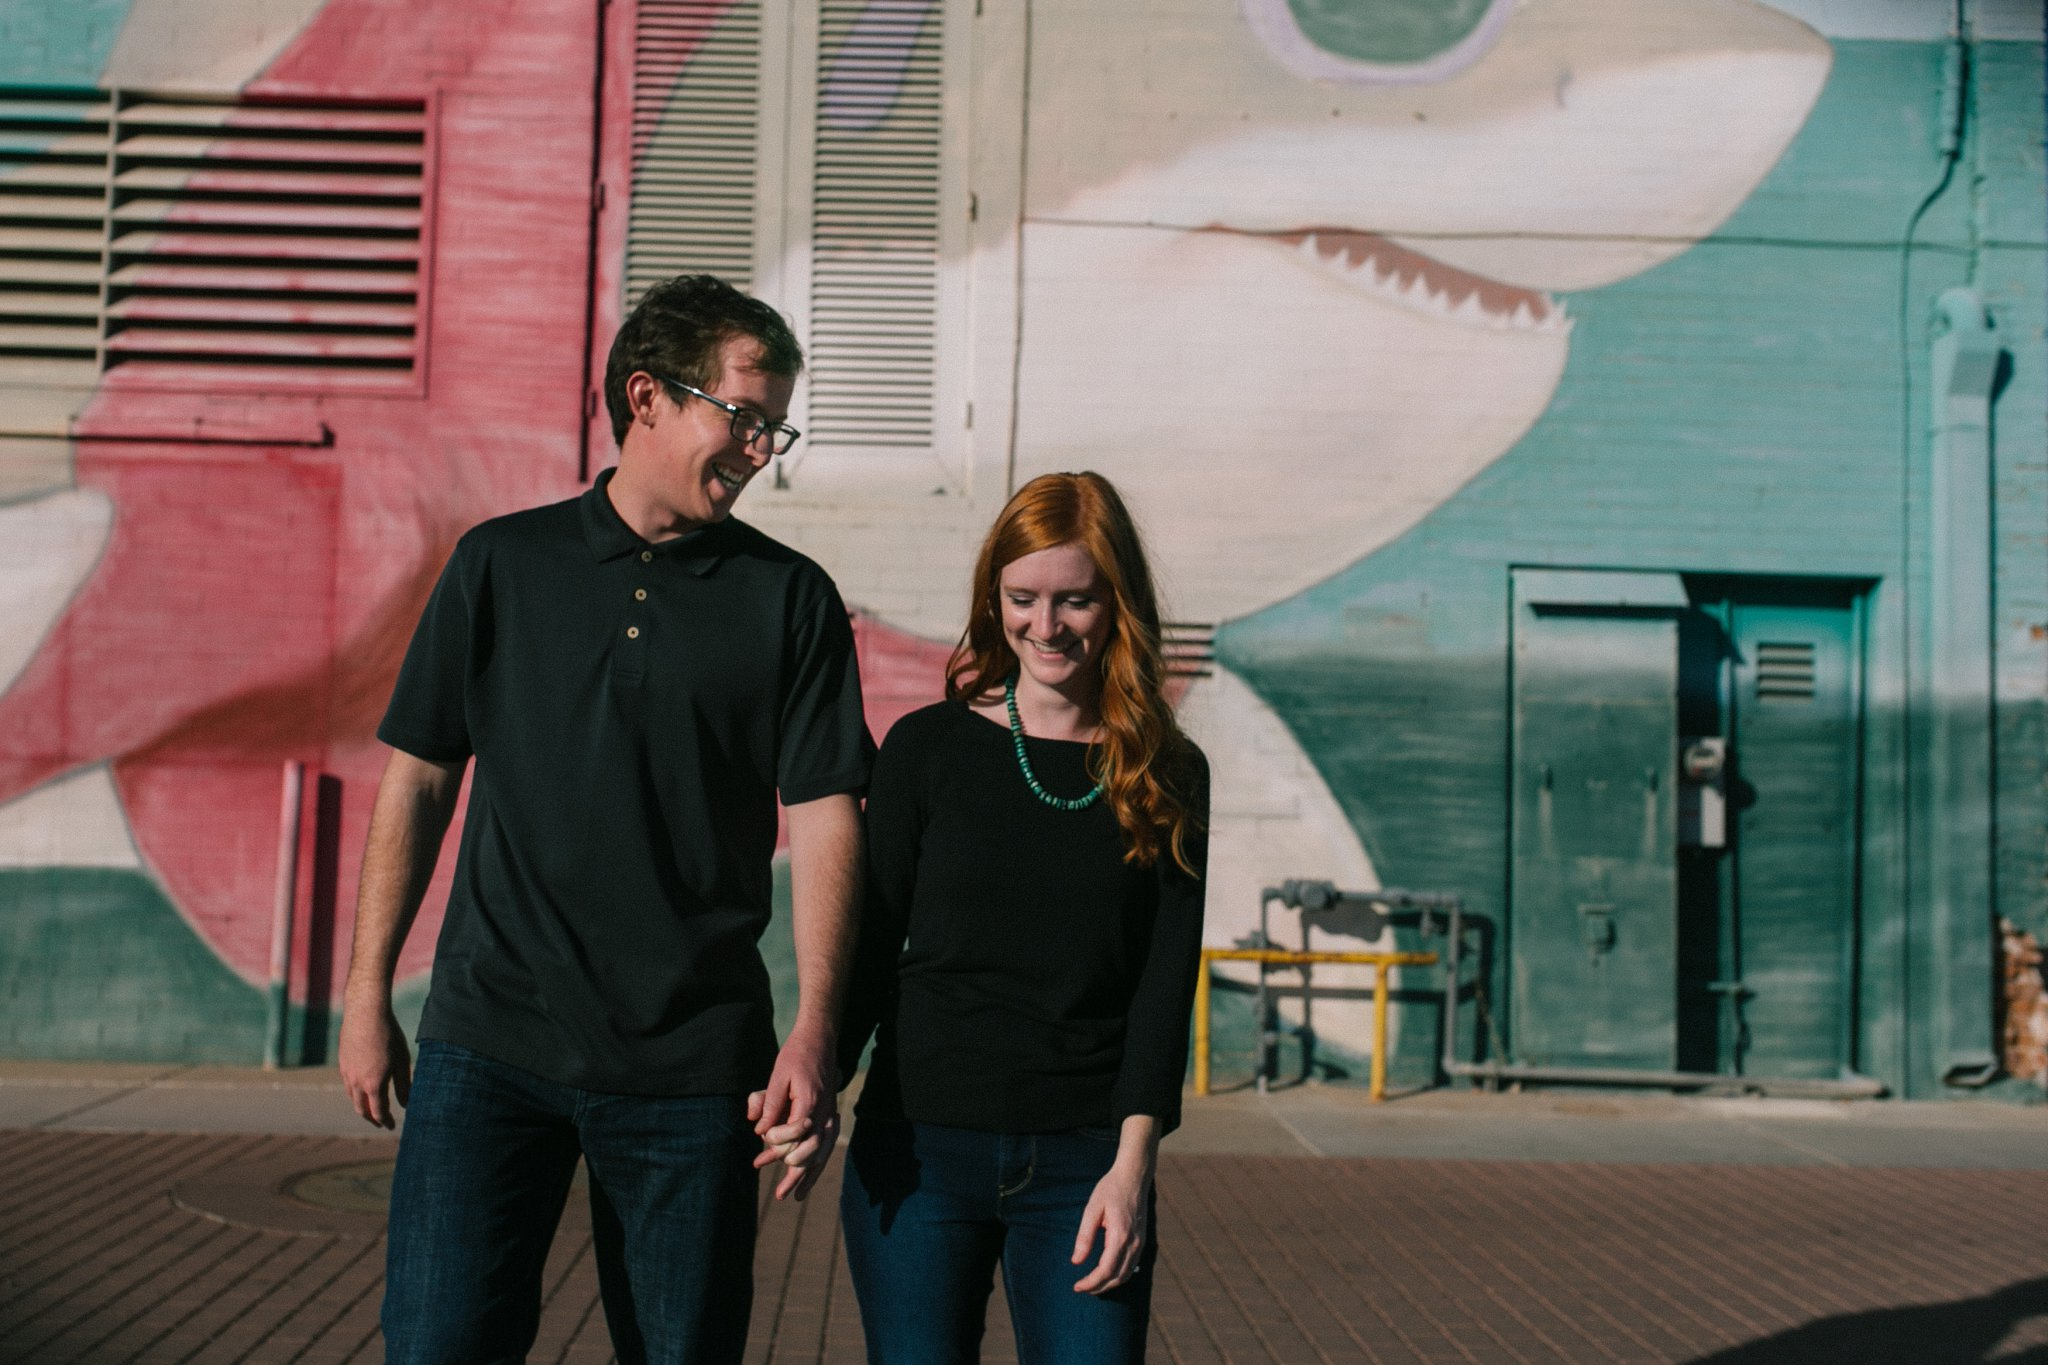 Mesa engagement photos downtown in front of shark with sunglasses mural